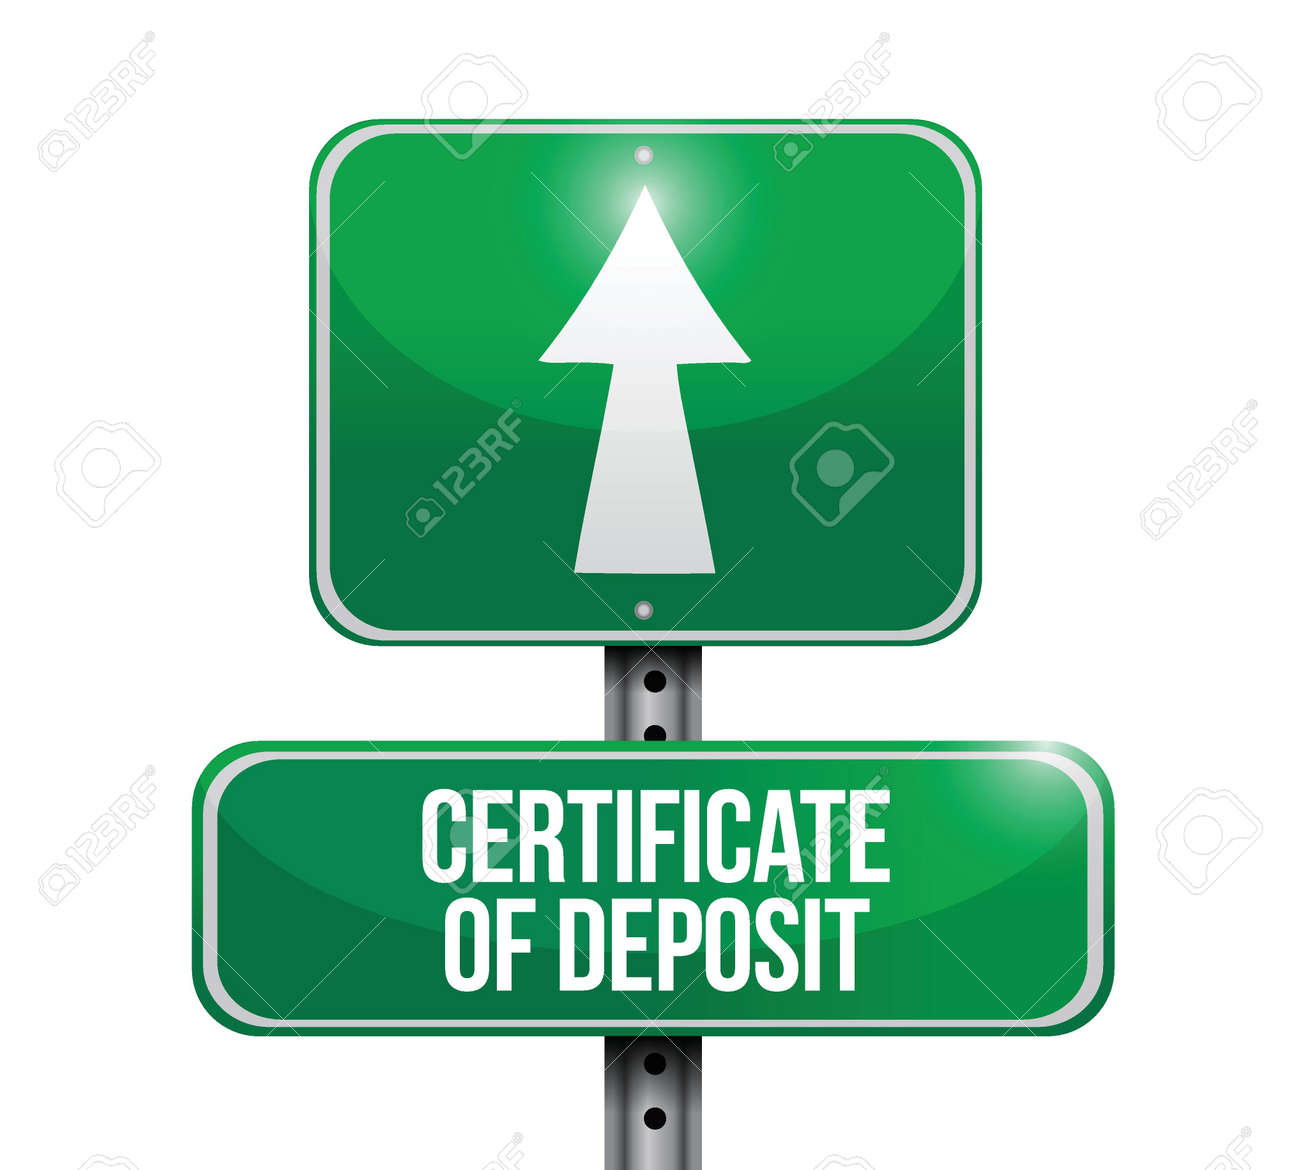 Certificate of deposit road sign illustrations design over white certificate of deposit road sign illustrations design over white stock vector 21081550 1betcityfo Gallery